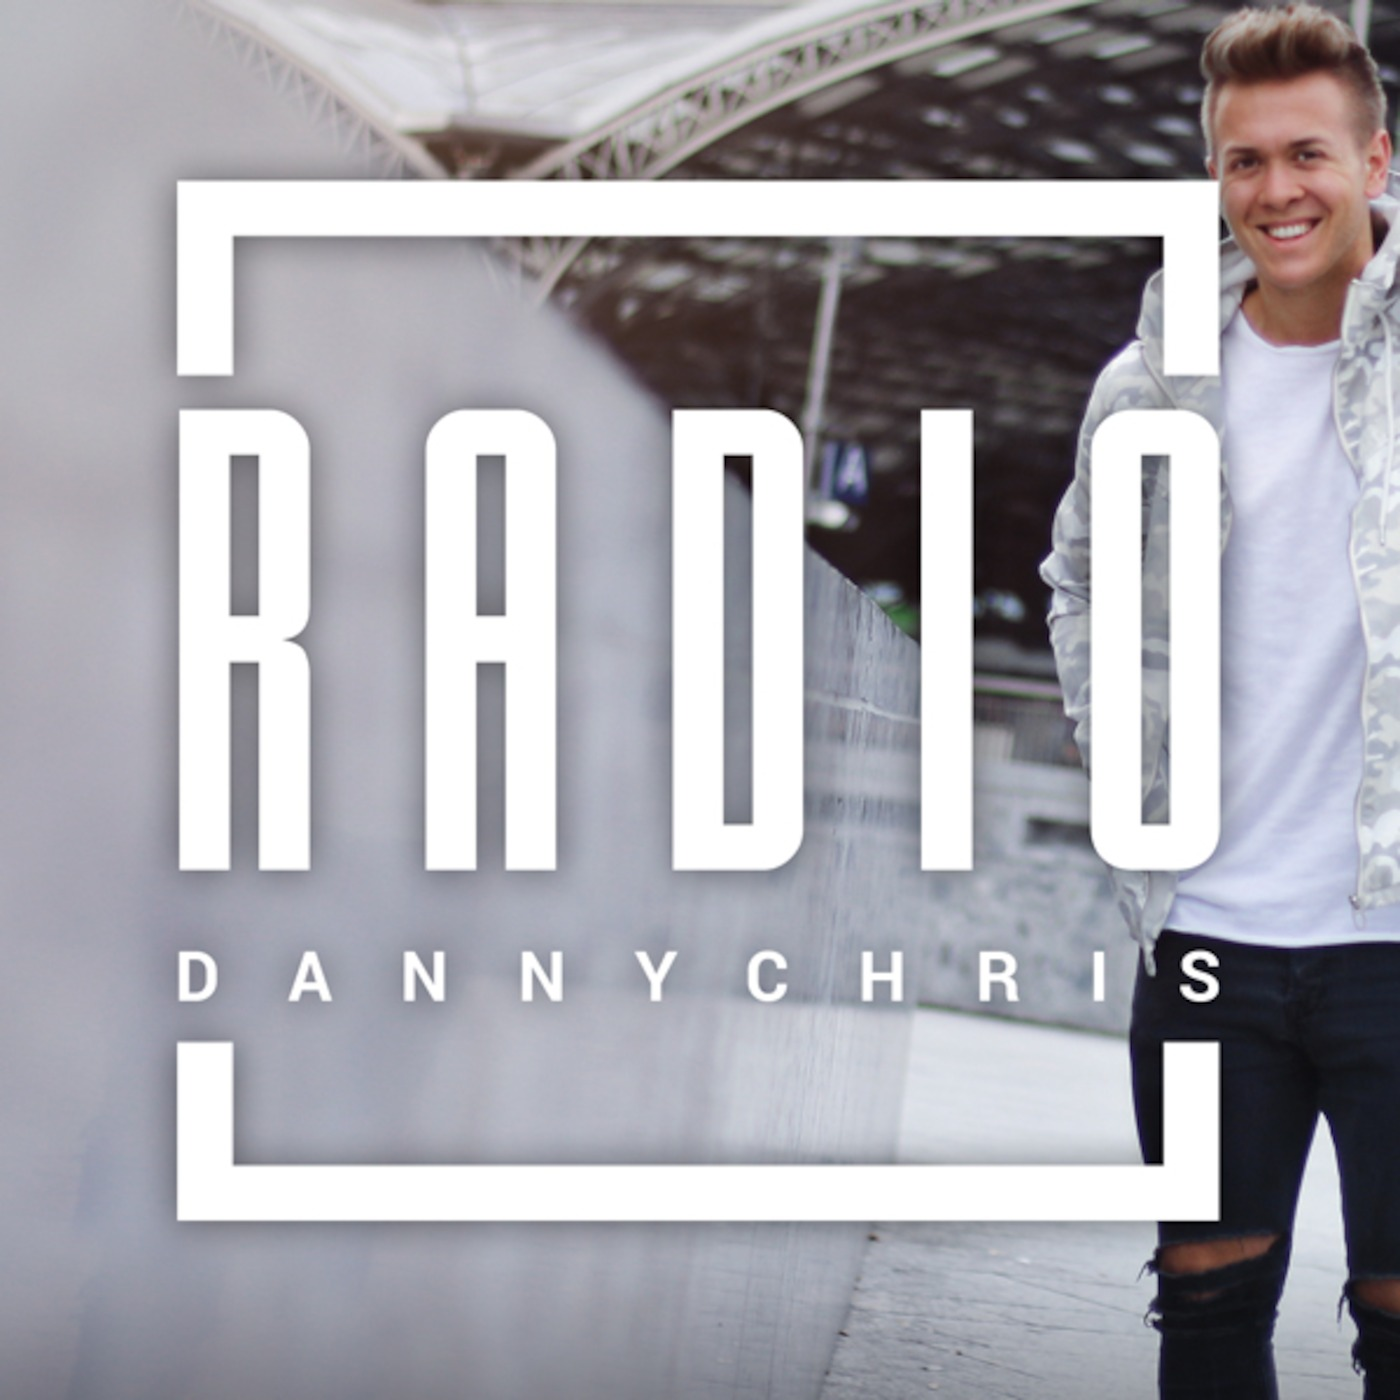 Danny Chris Radio